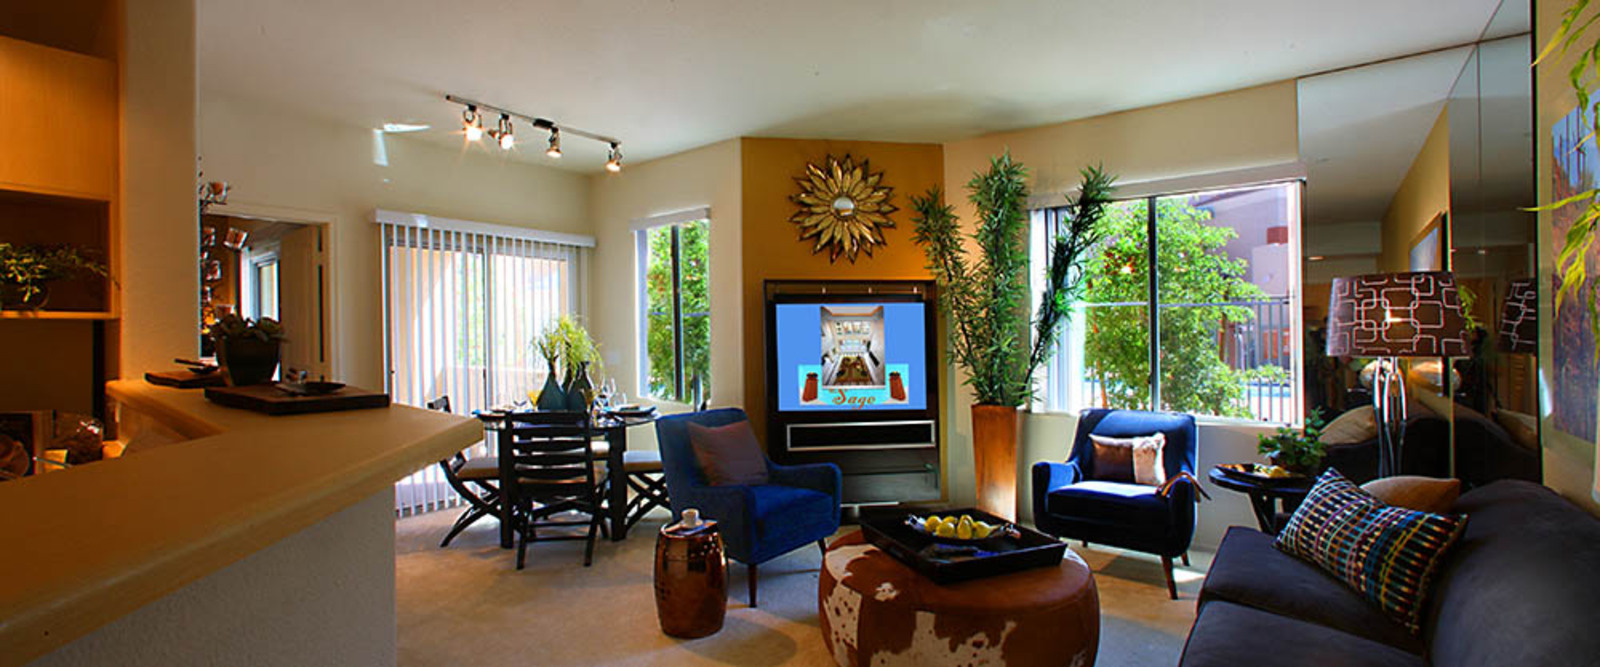 Apartments With Garages In Phoenix Az